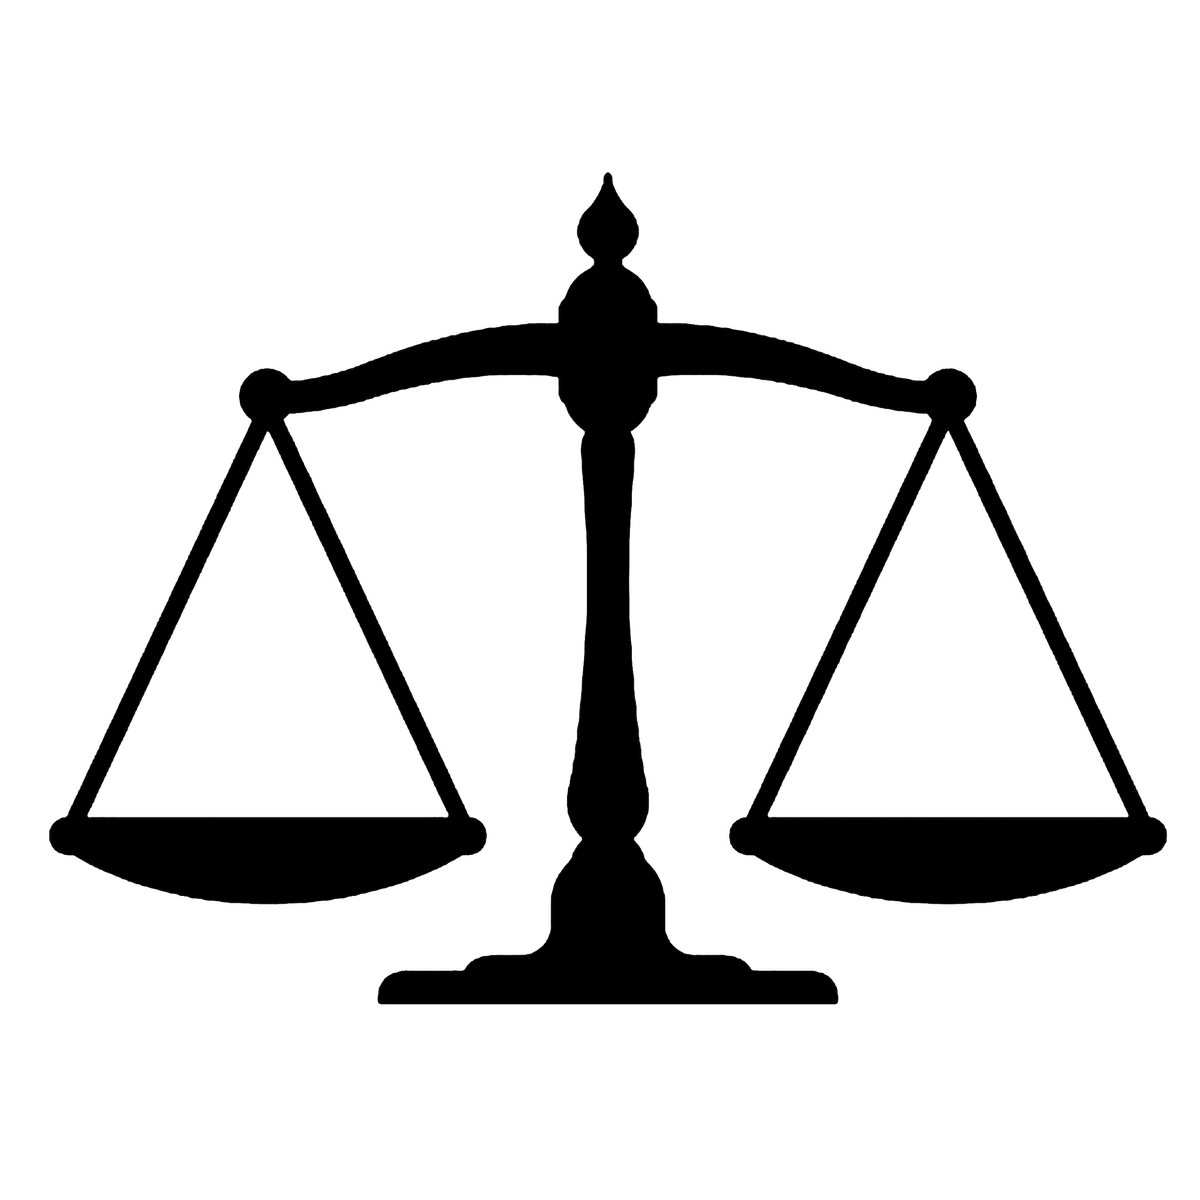 The B in B-tree #index stands for &quot;balanced&quot;  Every leaf node is at the same depth   https:// buff.ly/2xDGL8O  &nbsp;   by @MarkusWinand<br>http://pic.twitter.com/eZJ5FU8eRR